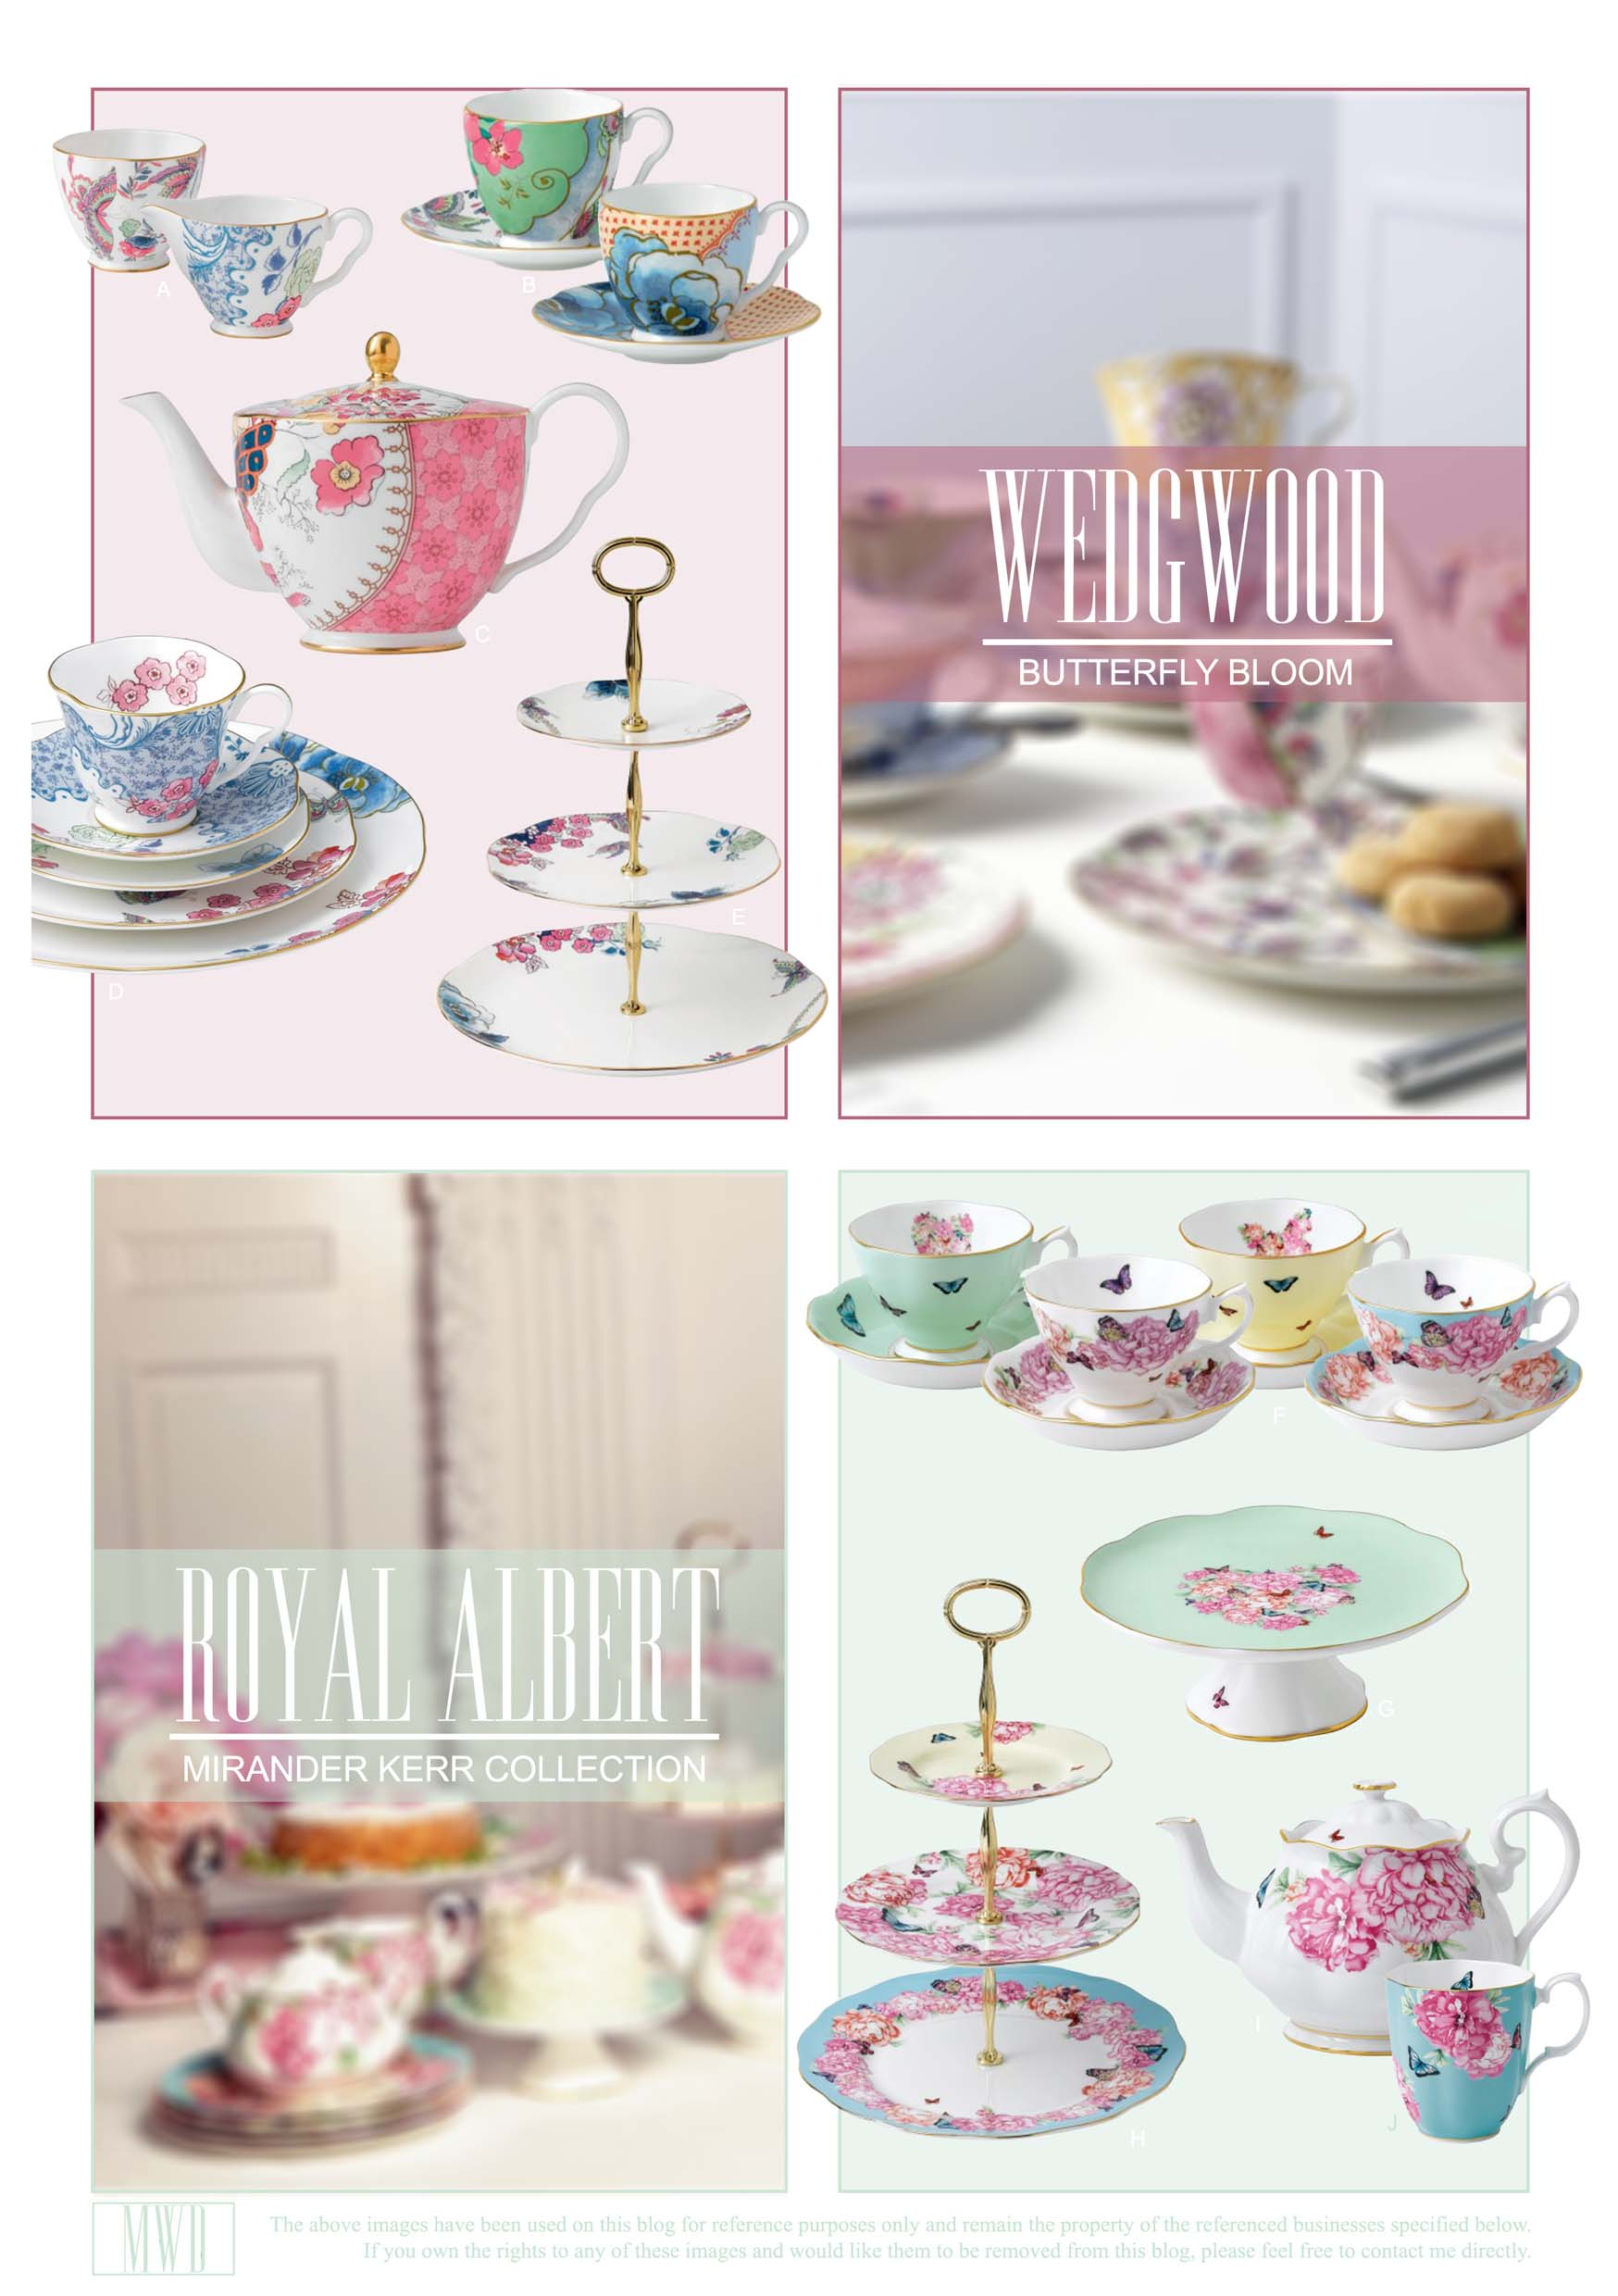 Wedgwood and Royal Albert luxury teaware collections